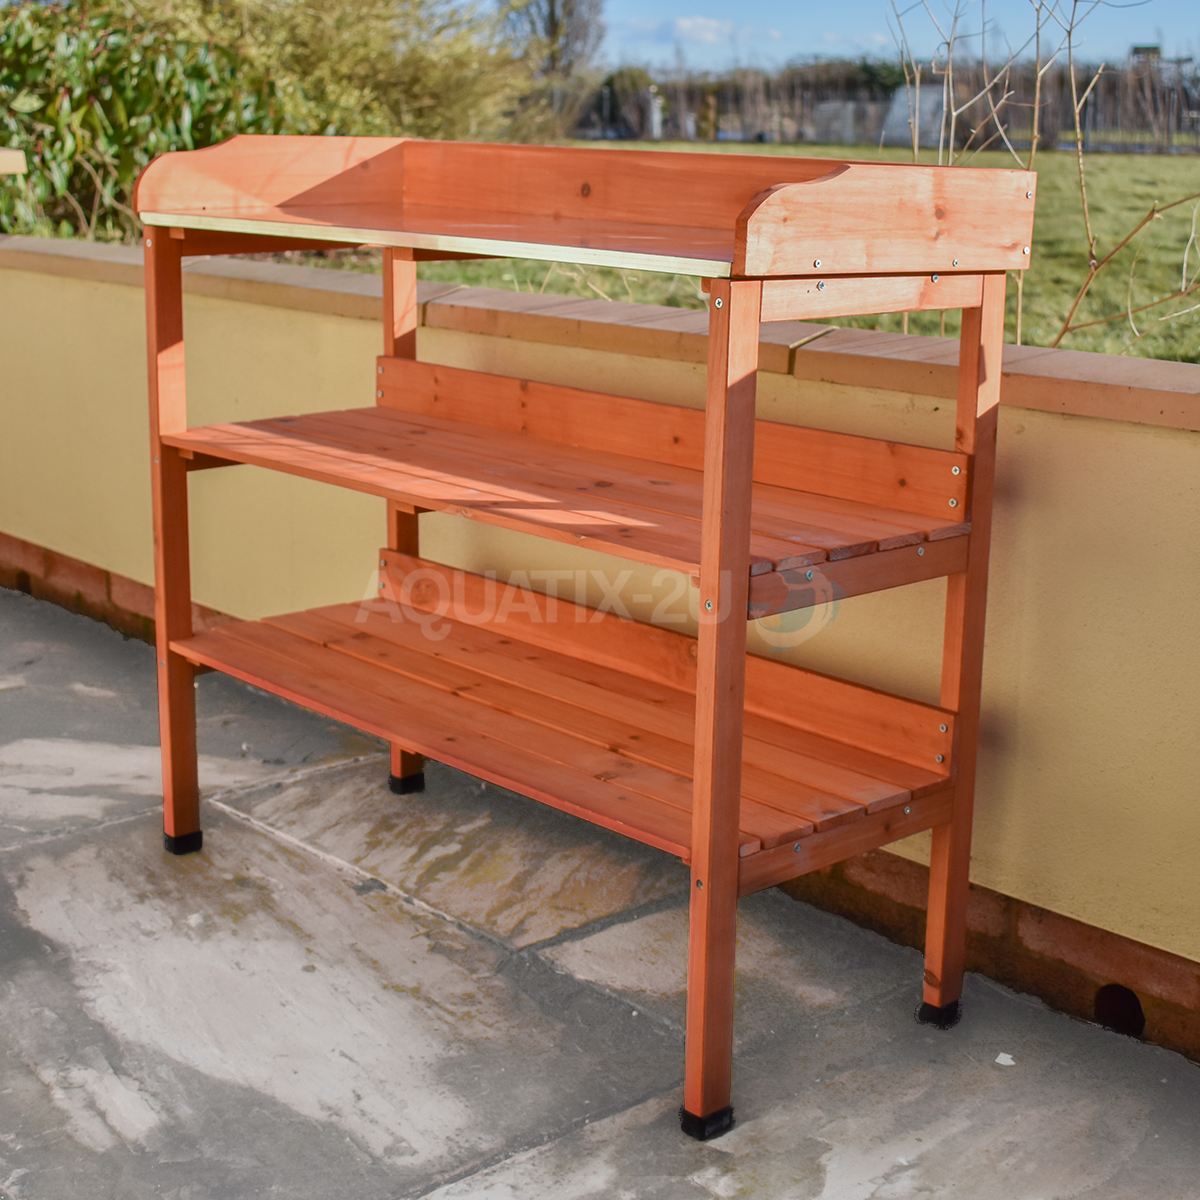 Garden Potting Bench: 3 Tier Wooden Garden Potting Bench